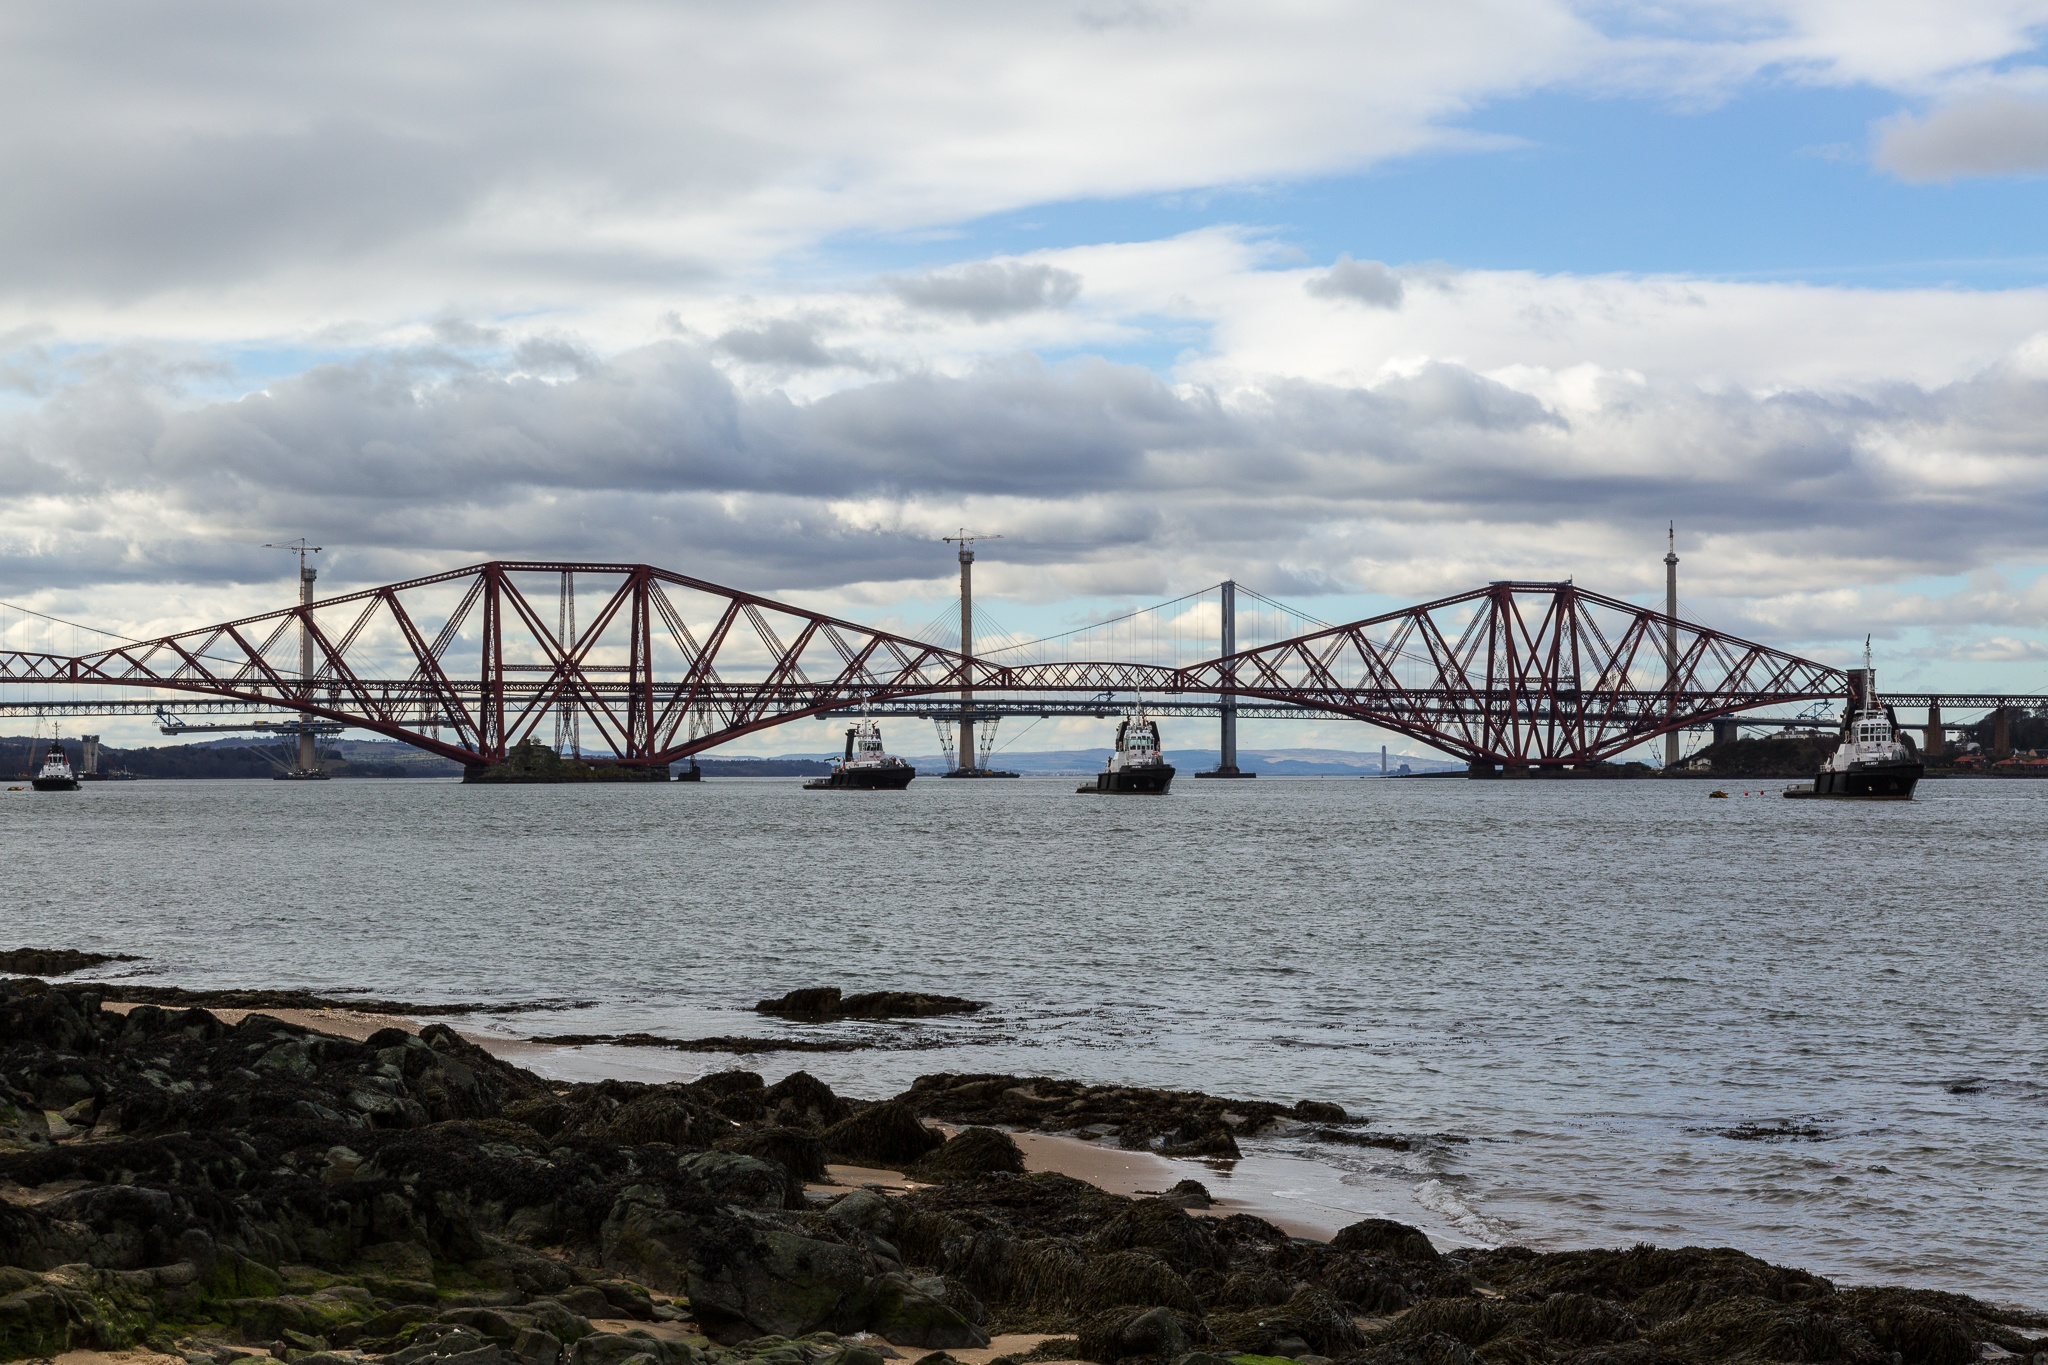 The Forth Bridges by Bruce MacLennan